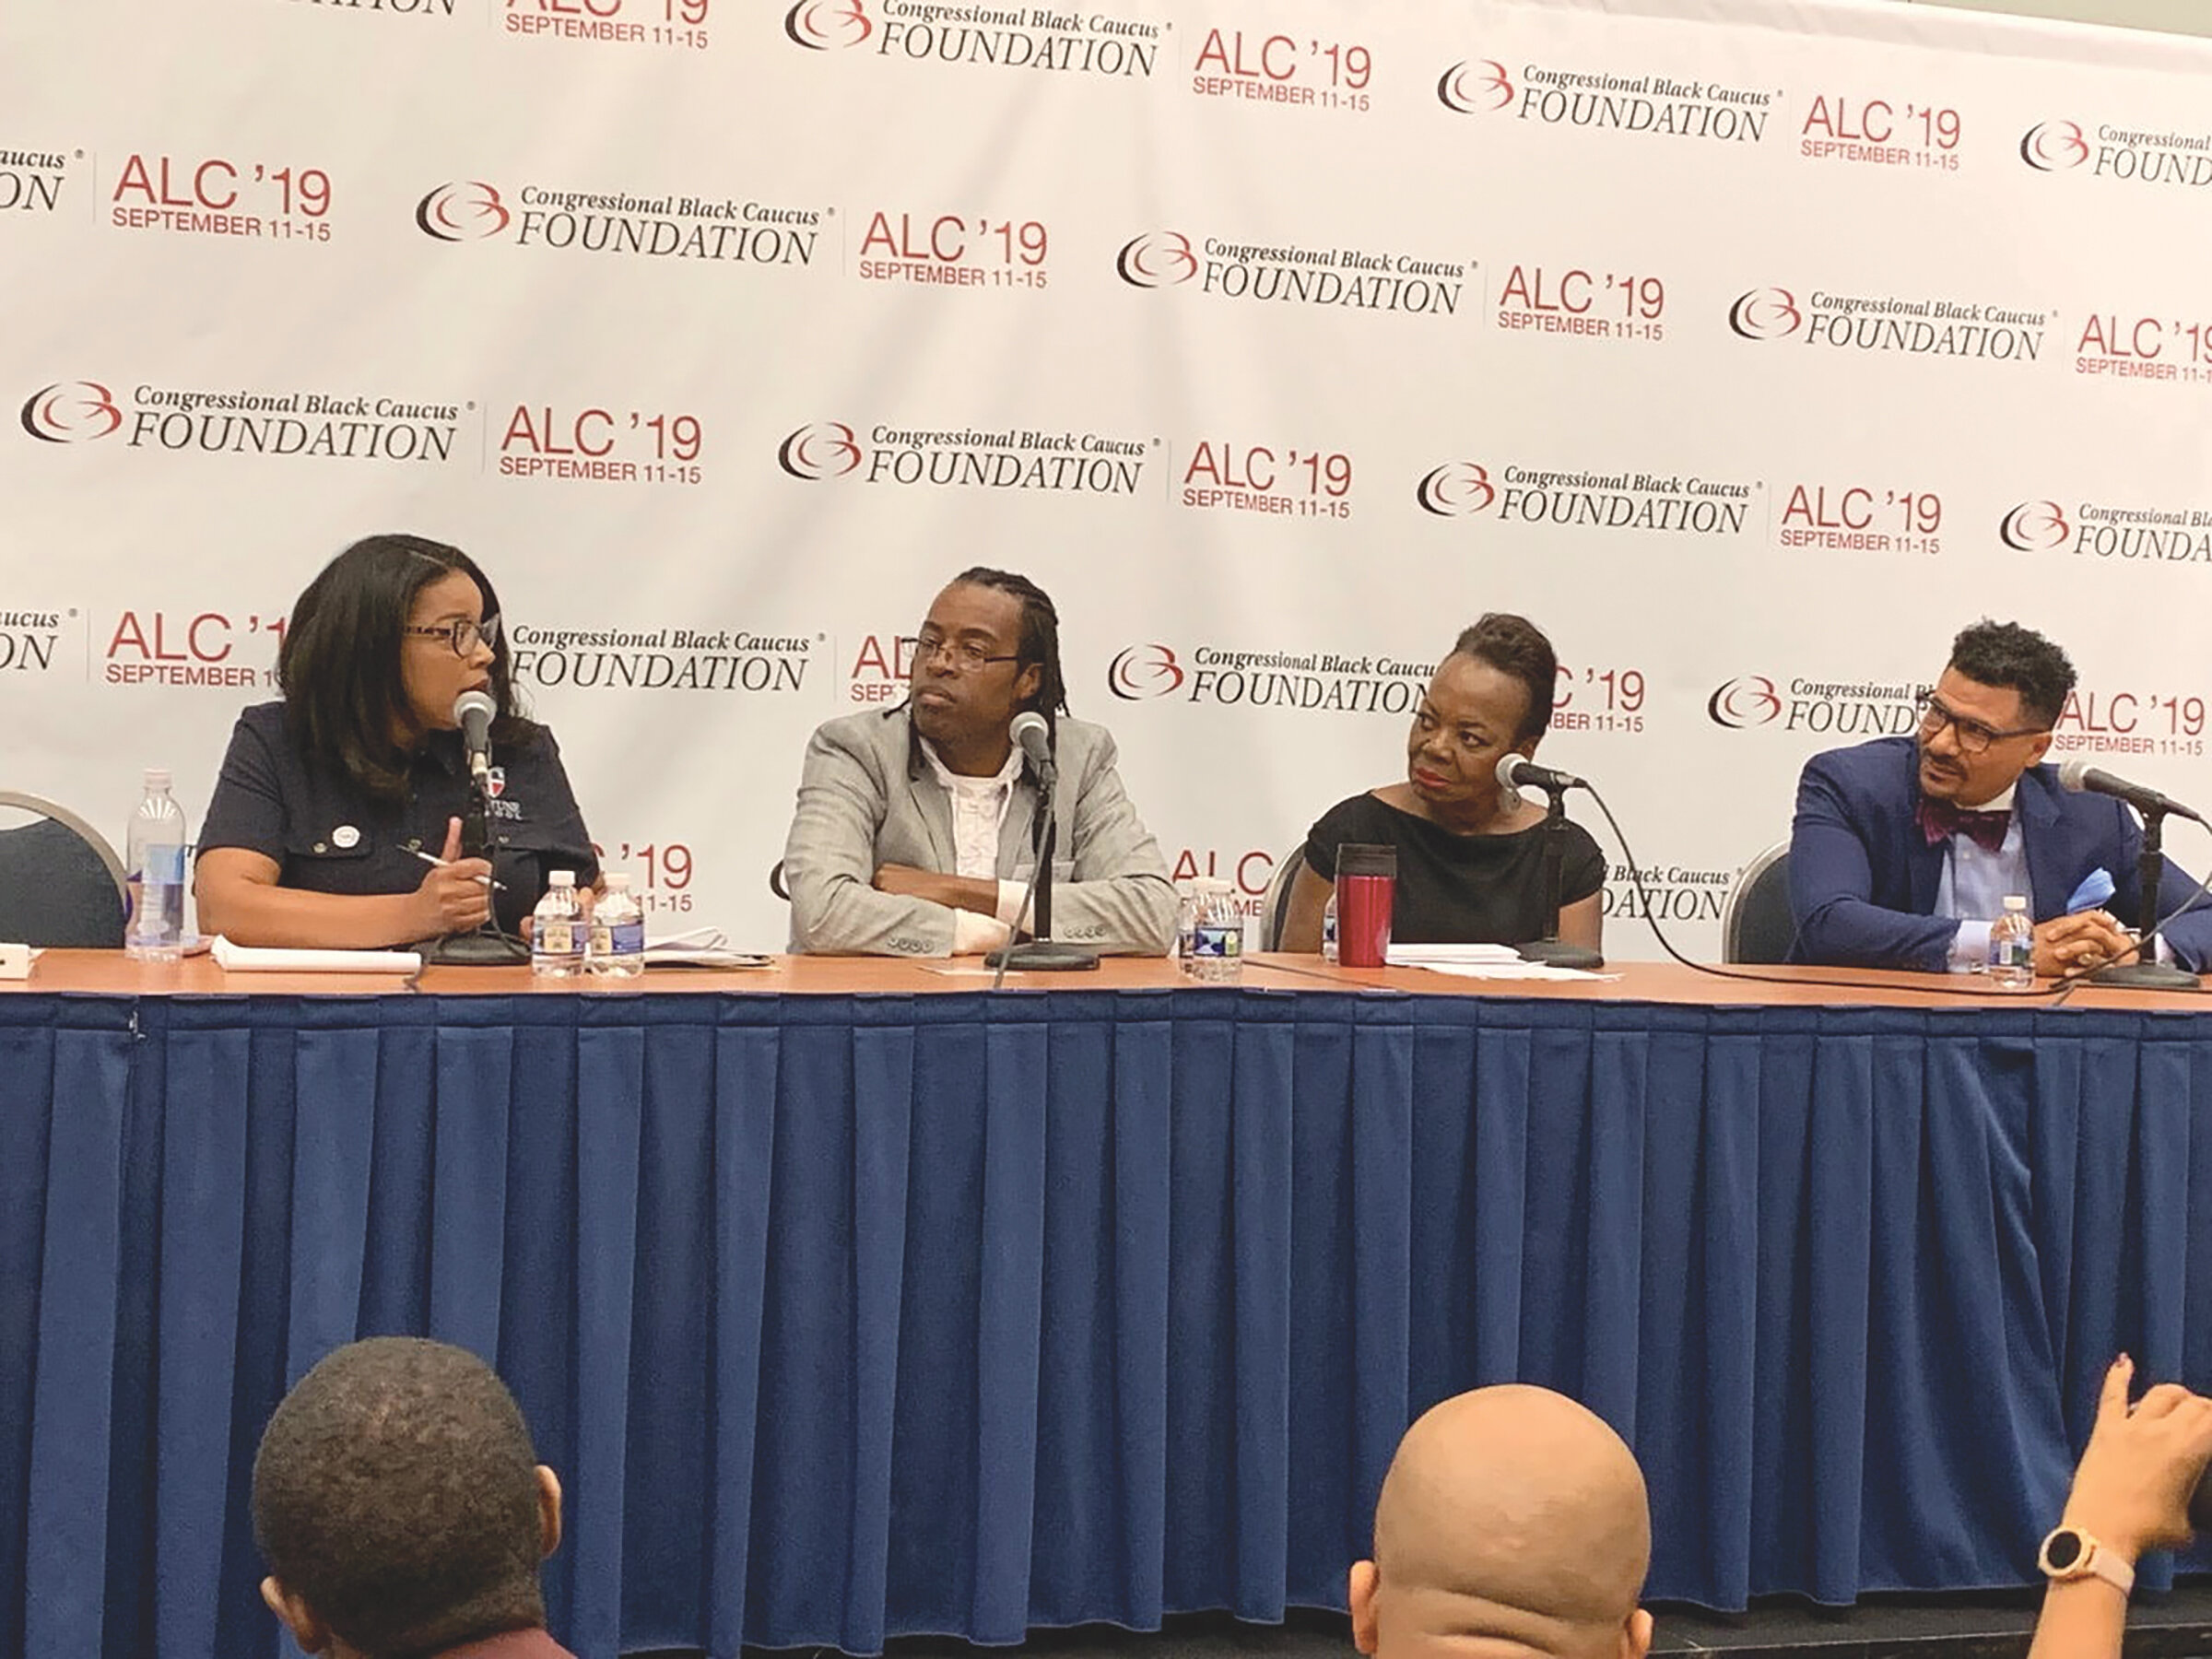 Photo caption: Dr. Margaret Fortune, President and CEO, Fortune School of Education, Shawn Hardnett, CEO & Founder, Statesmen College Preparatory Academy For Boys, Dr. Elizabeth A. Davis, President, Washington Teachers' Union and Dr. Steve Perry, Educator and Motivational Speaker.